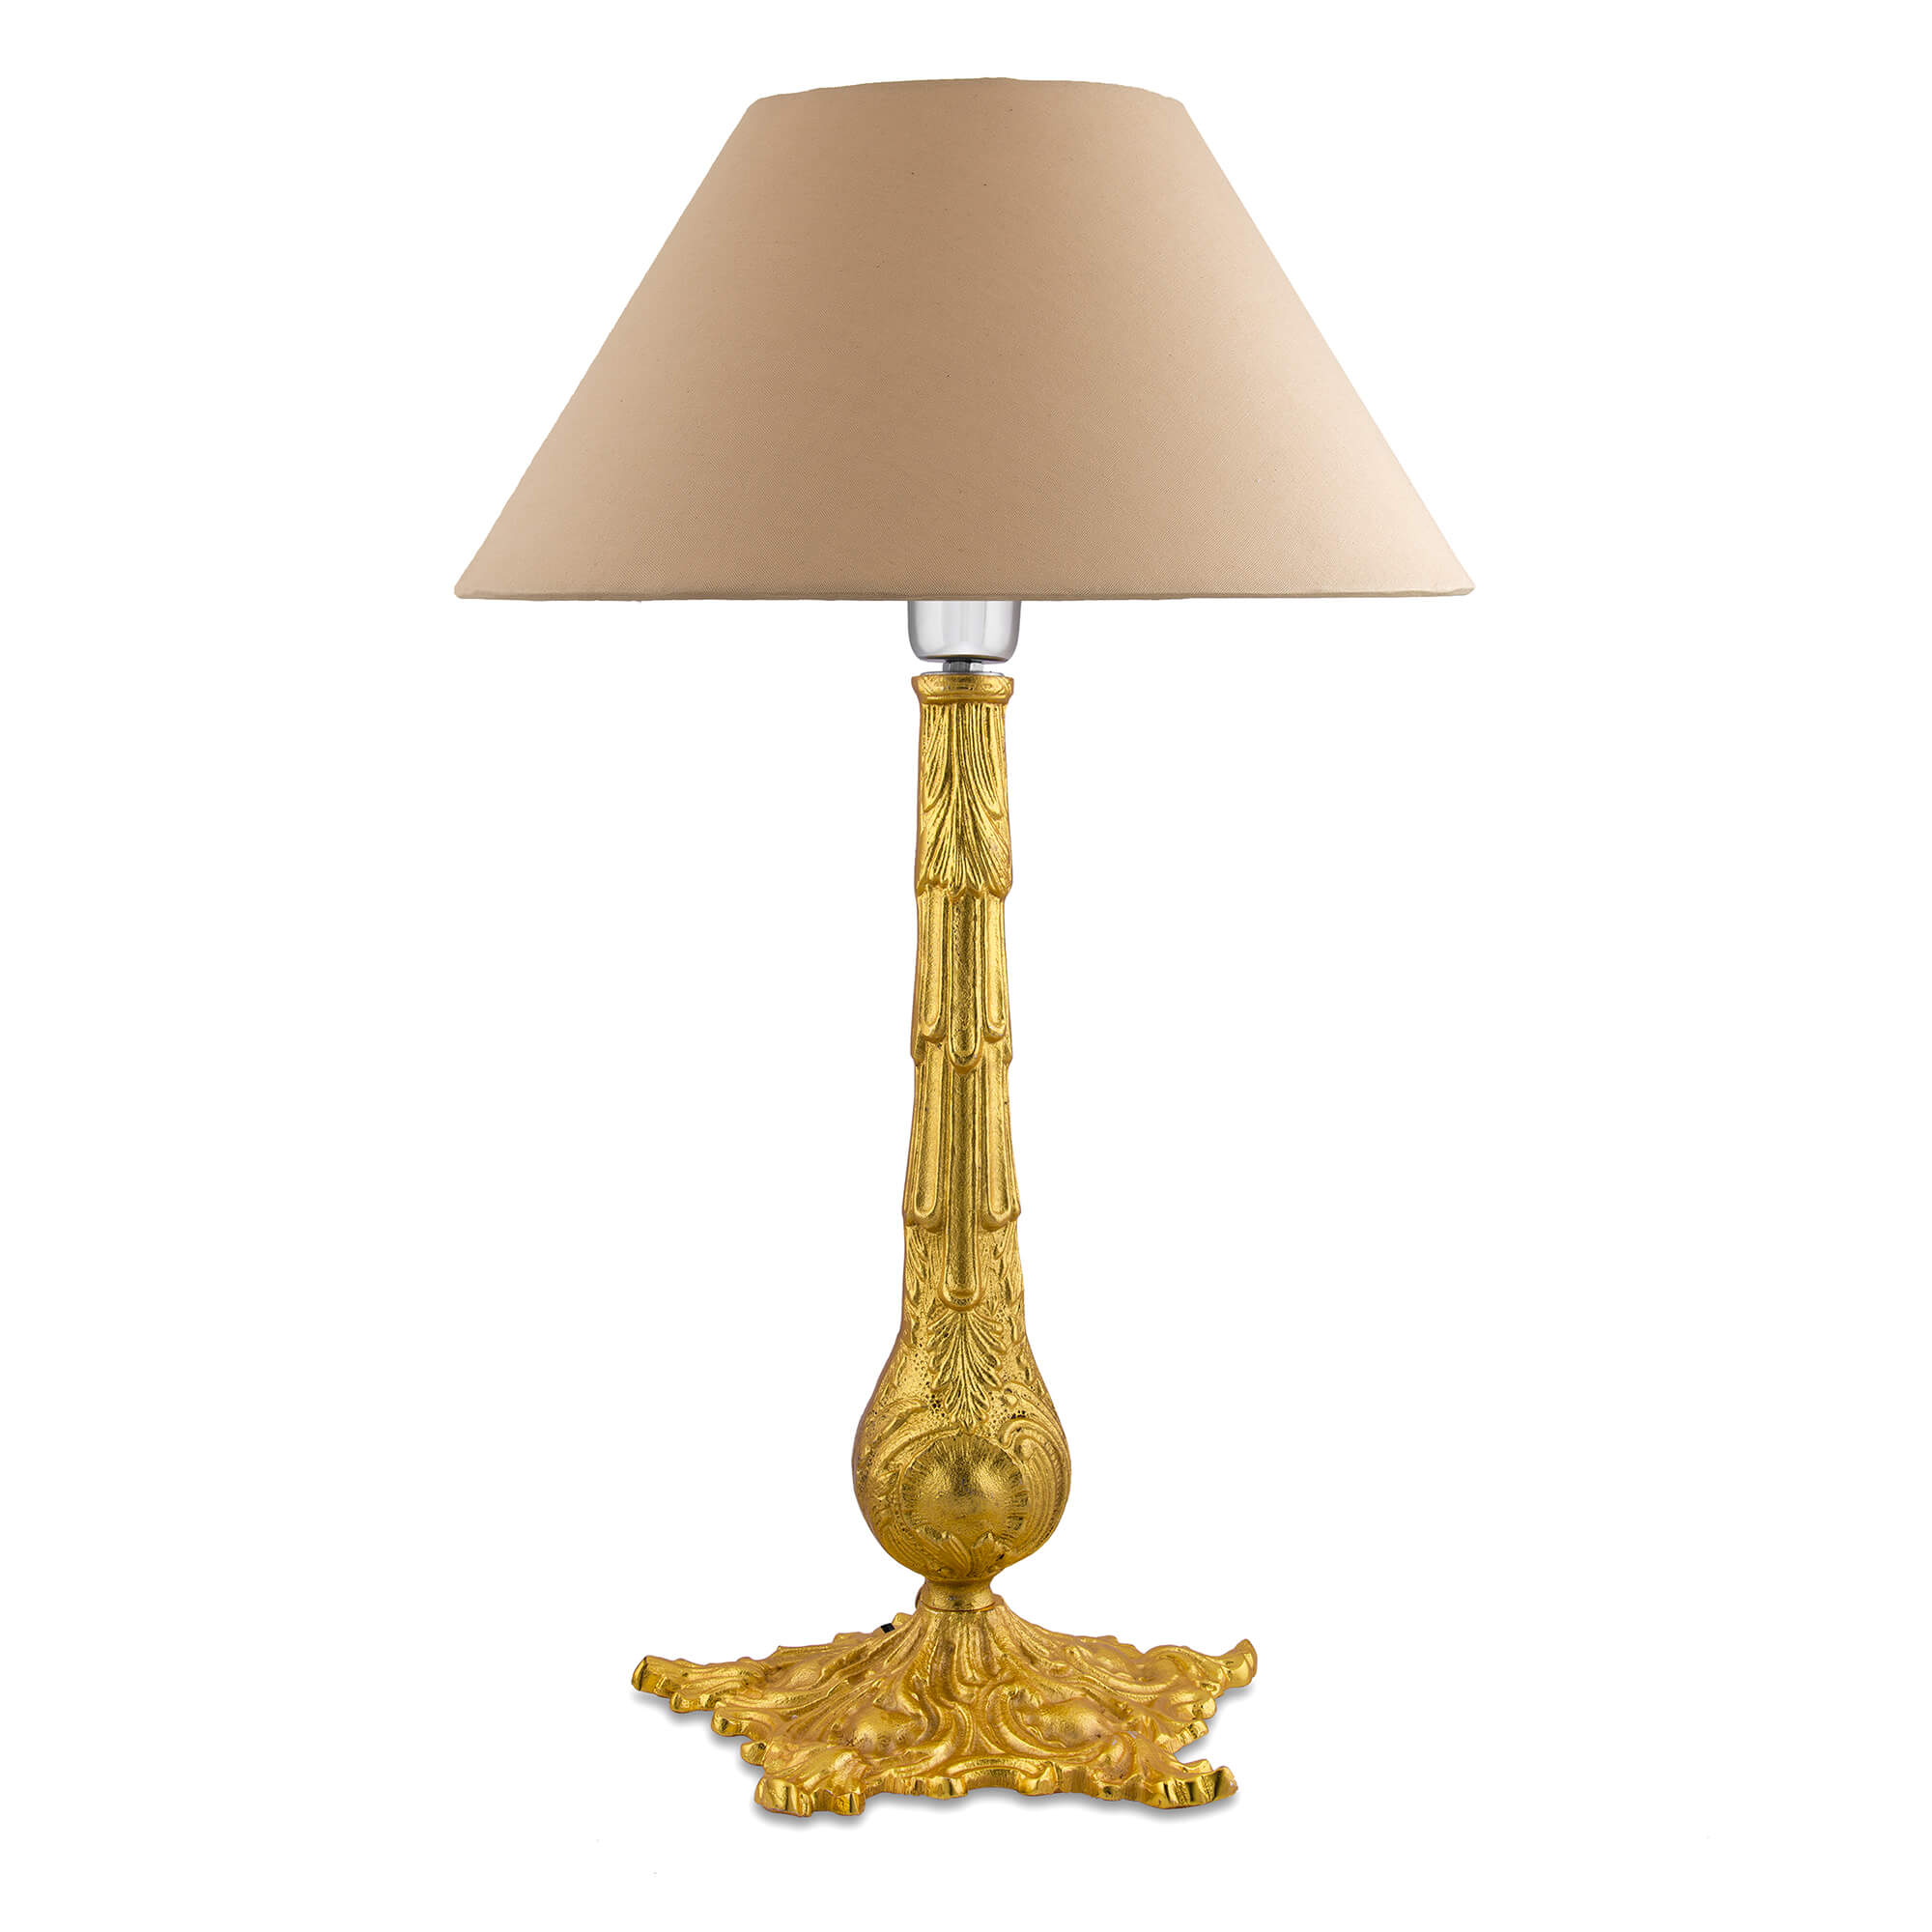 Victorian Carving Gold Brushed Lamp with Golden Shade